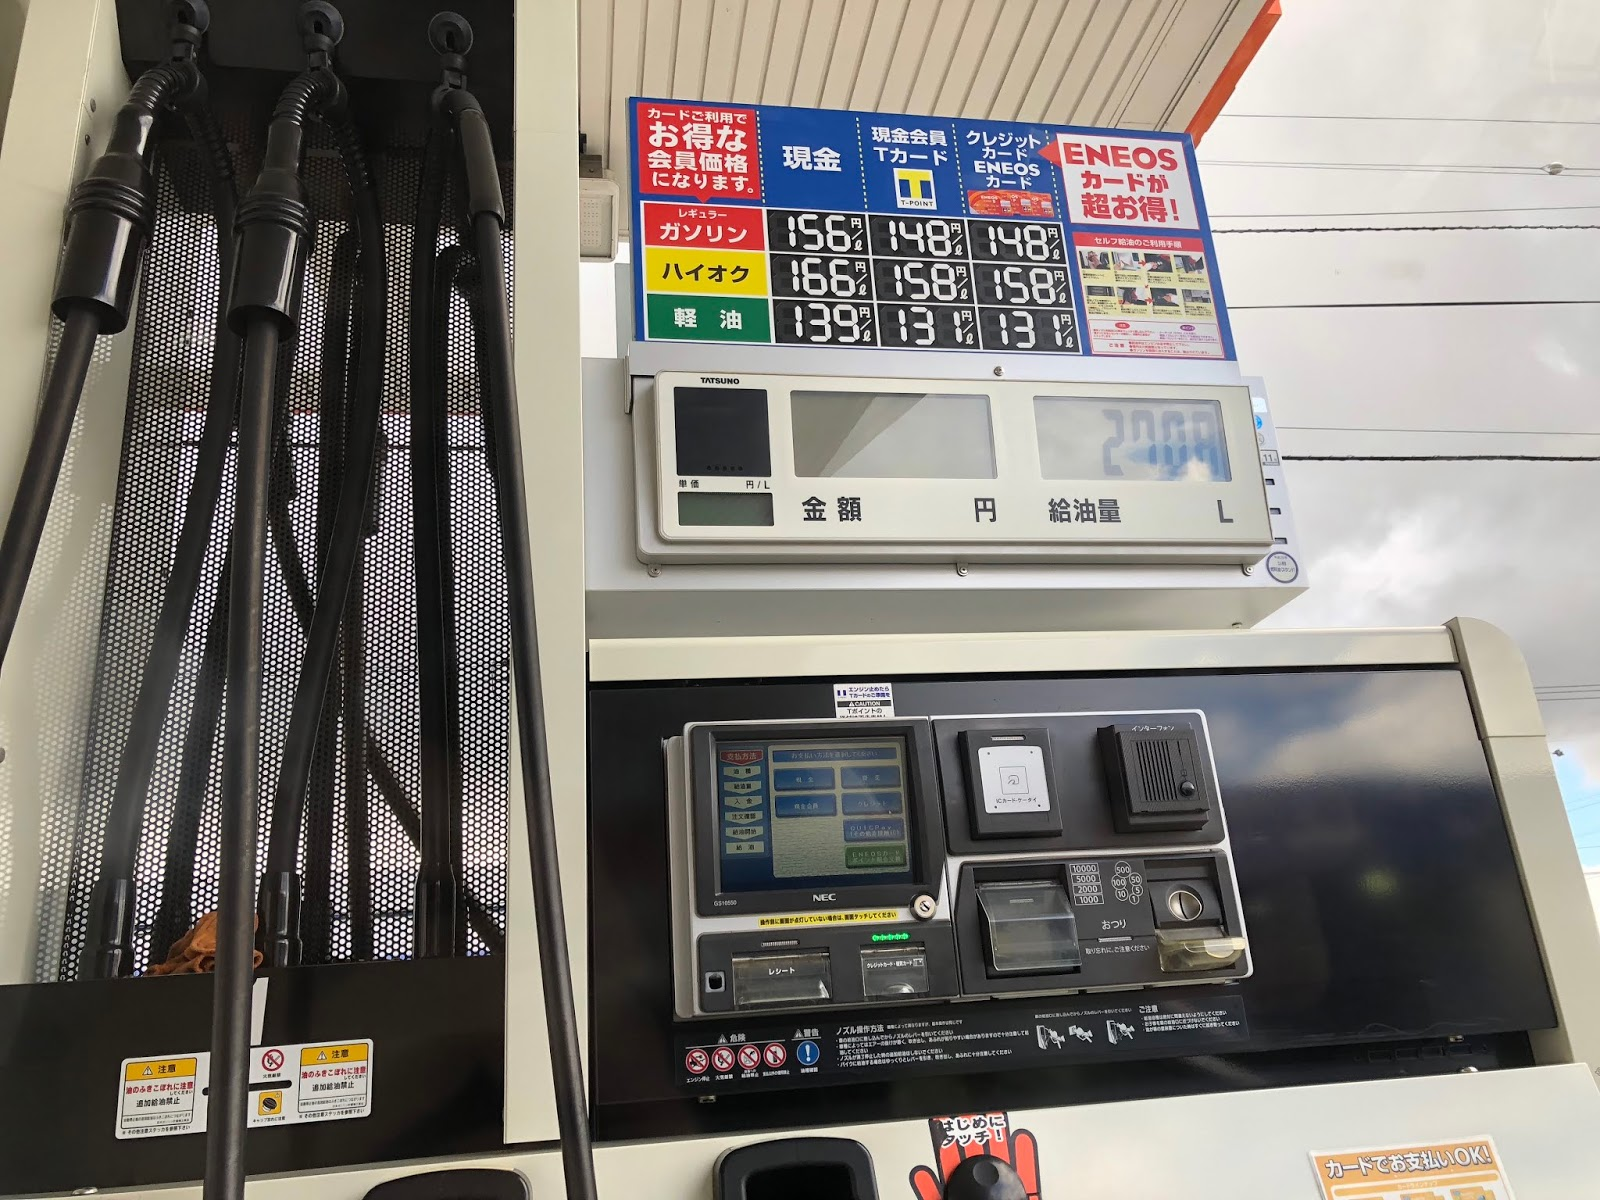 Types of fuel (gasoline) in Japan